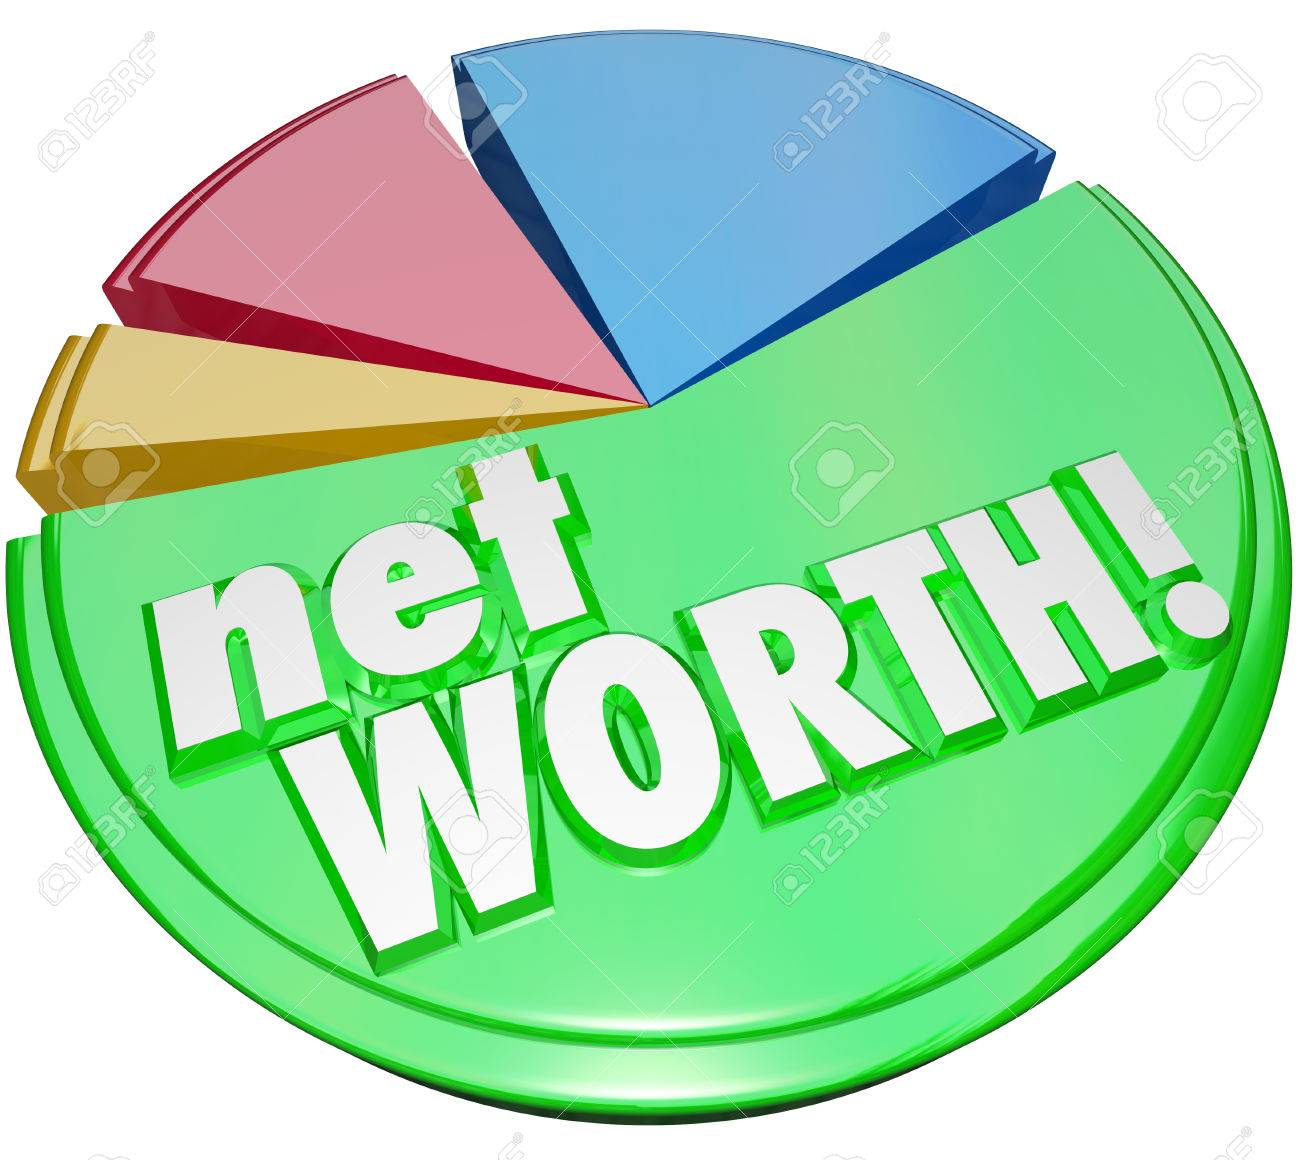 net worth words on a pie chart comparing the total value of your